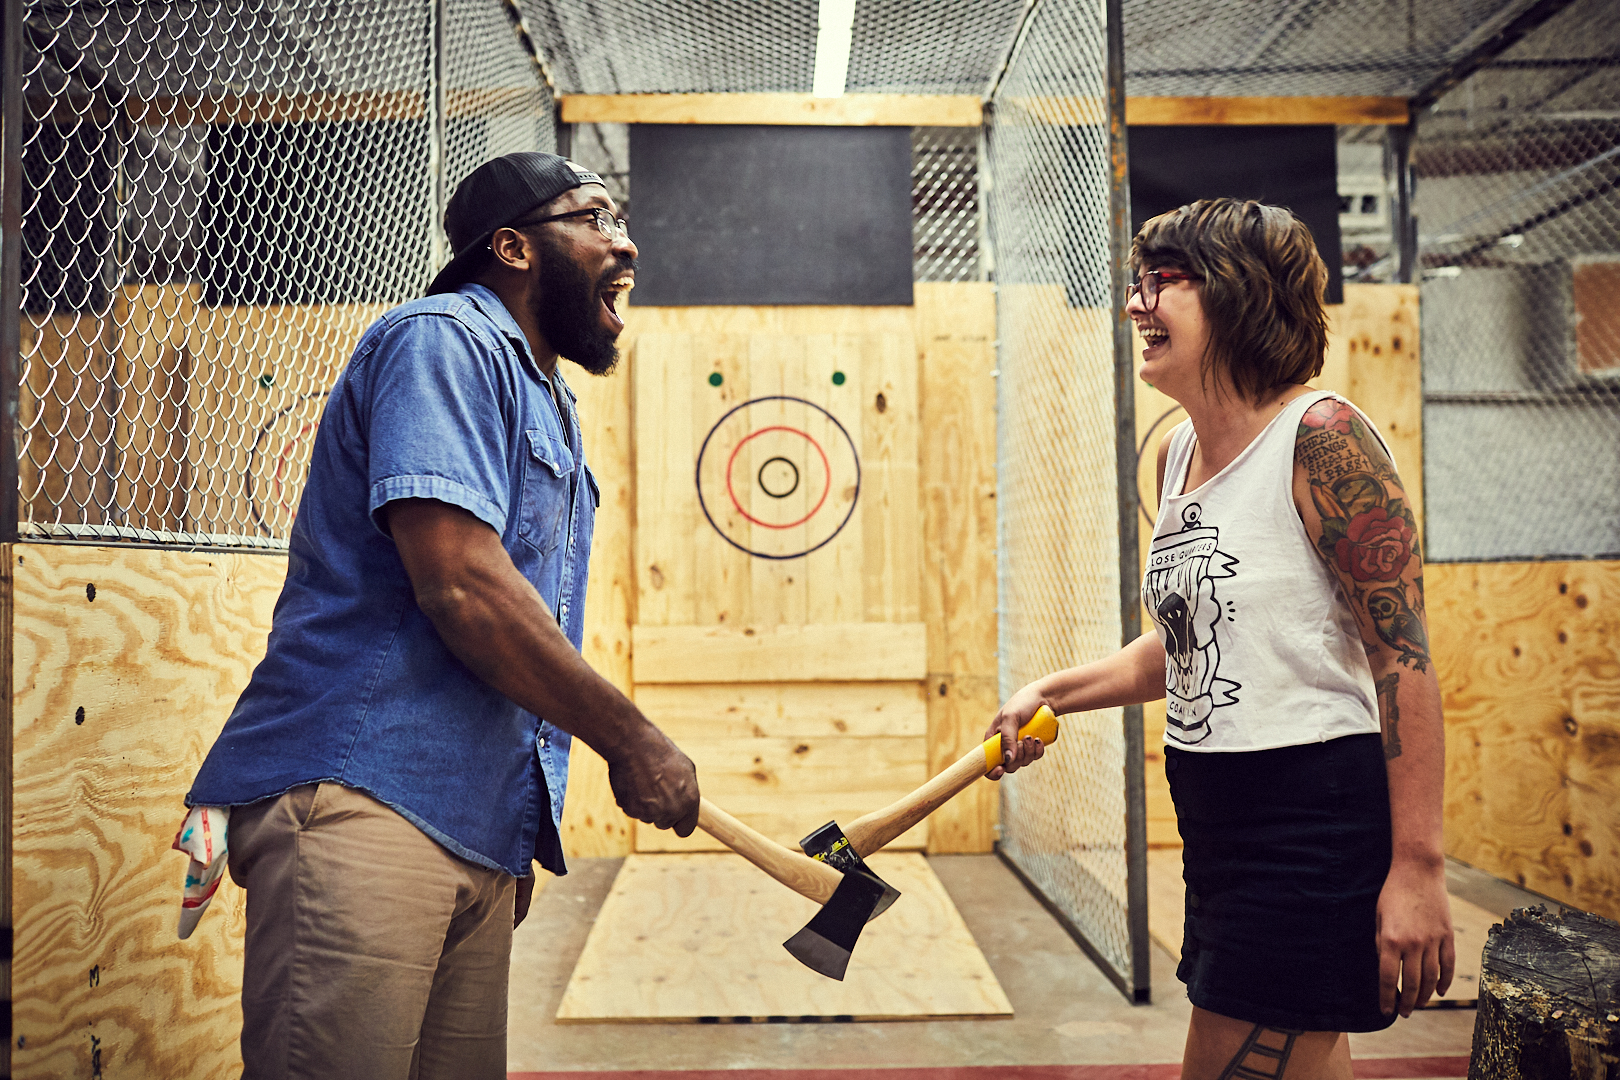 Two participants at an Urban Axes location smile and touch axes —the ax-throwing equivalent of a handshake — before beginning a round